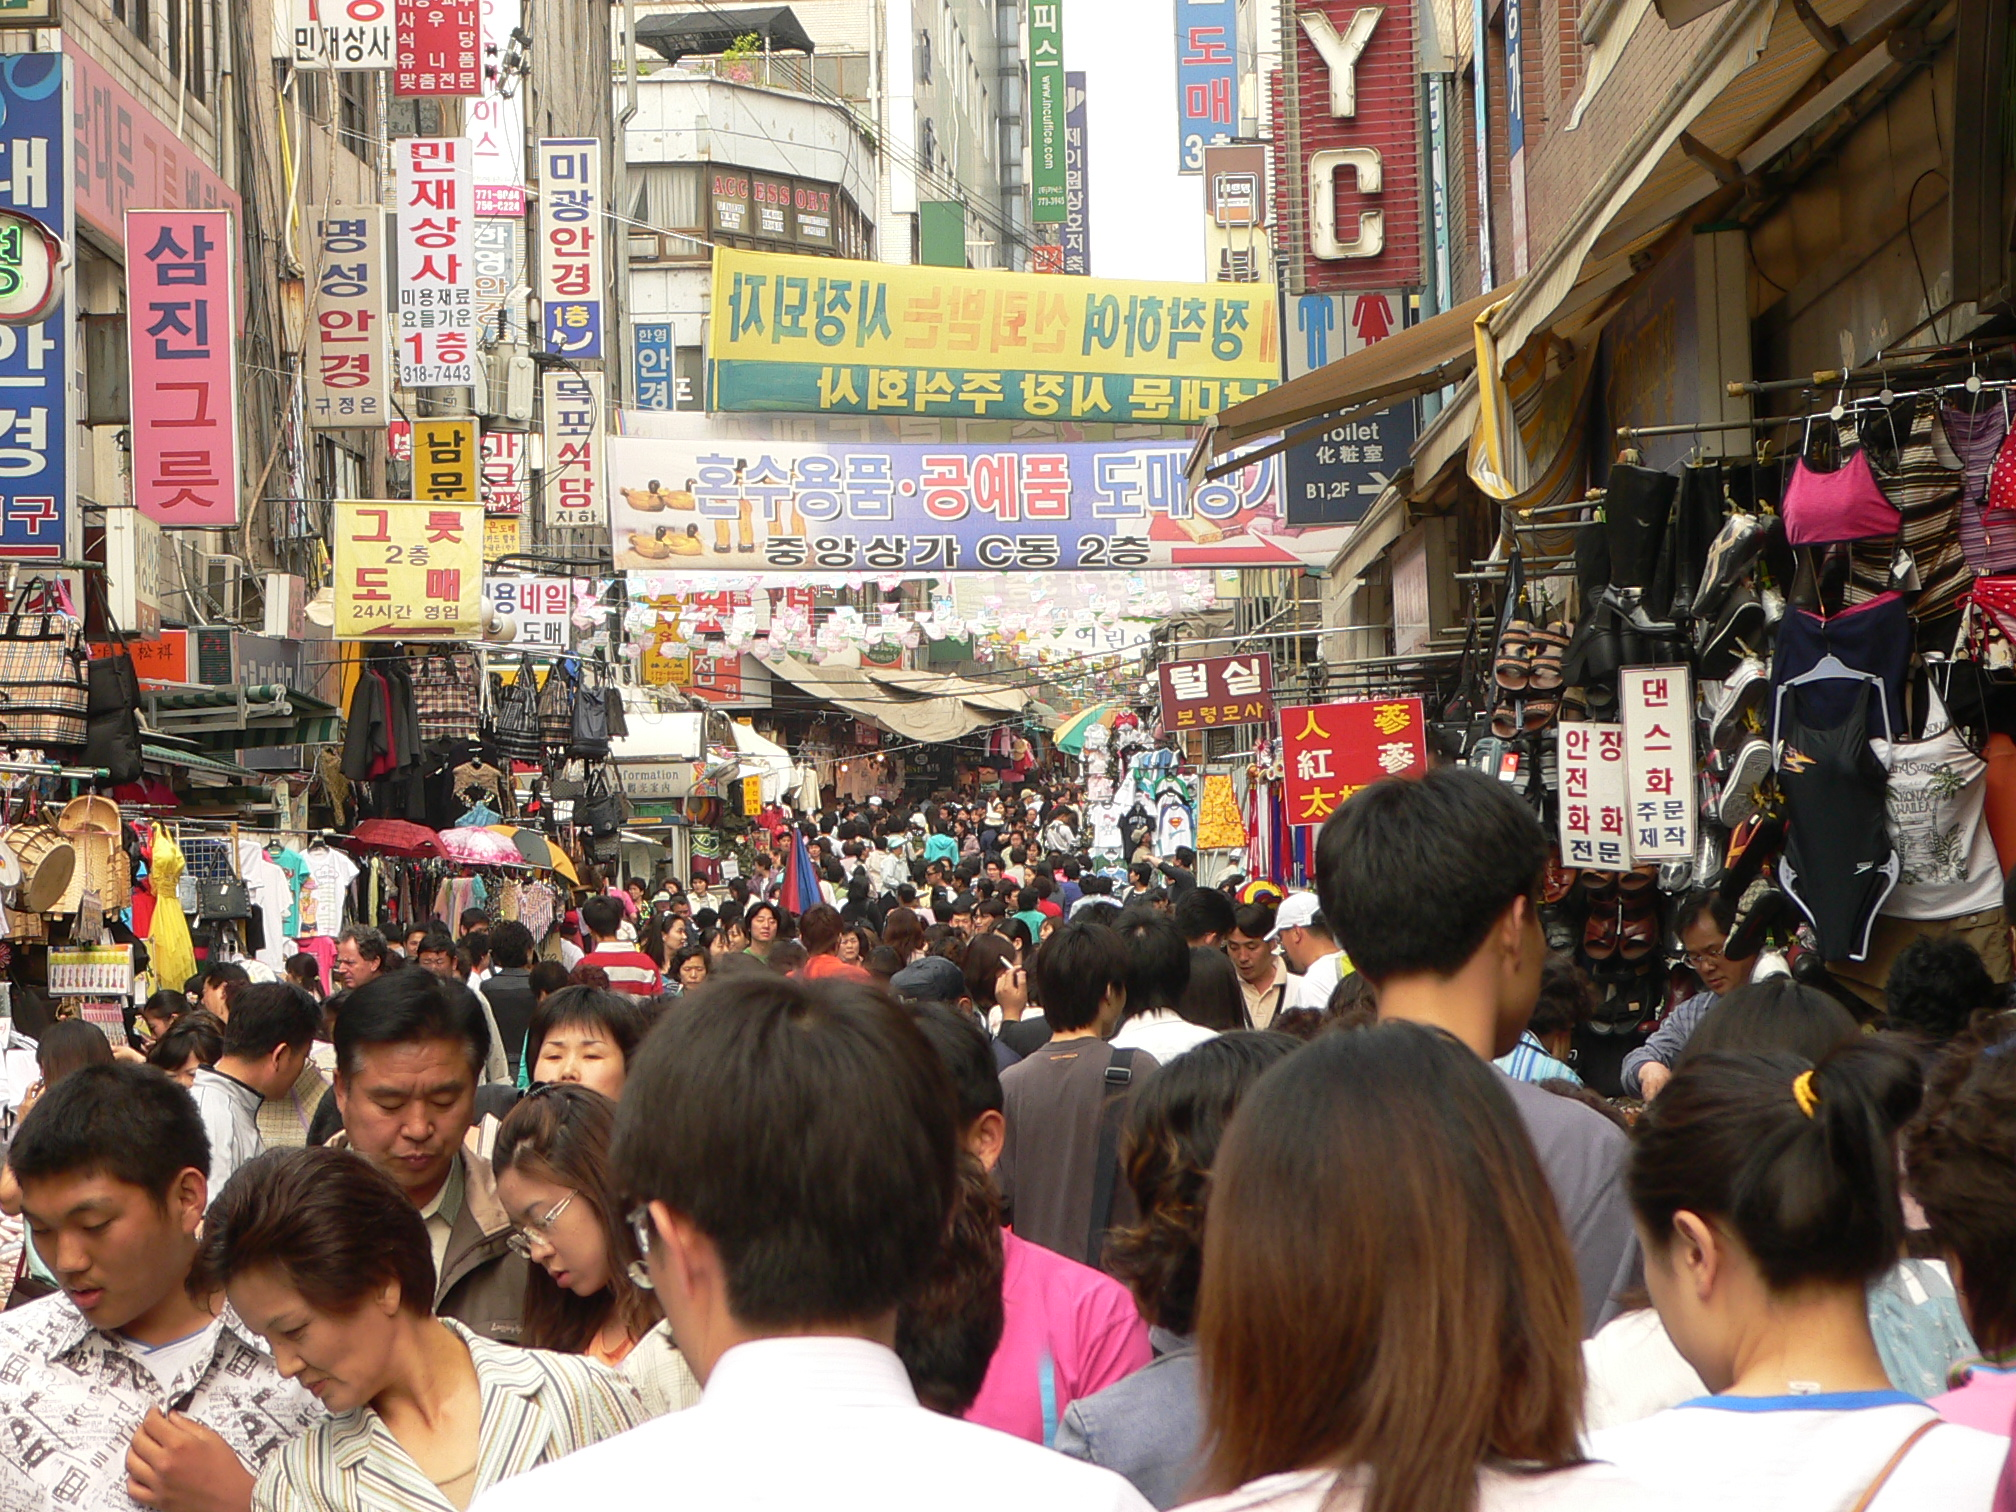 Crowded scenes like this market in Seoul are going to become the norm for cities worldwide. Photo Credit:  Crowded by  Craig Nagy, via Flickr,  CC BY-SA 2.0